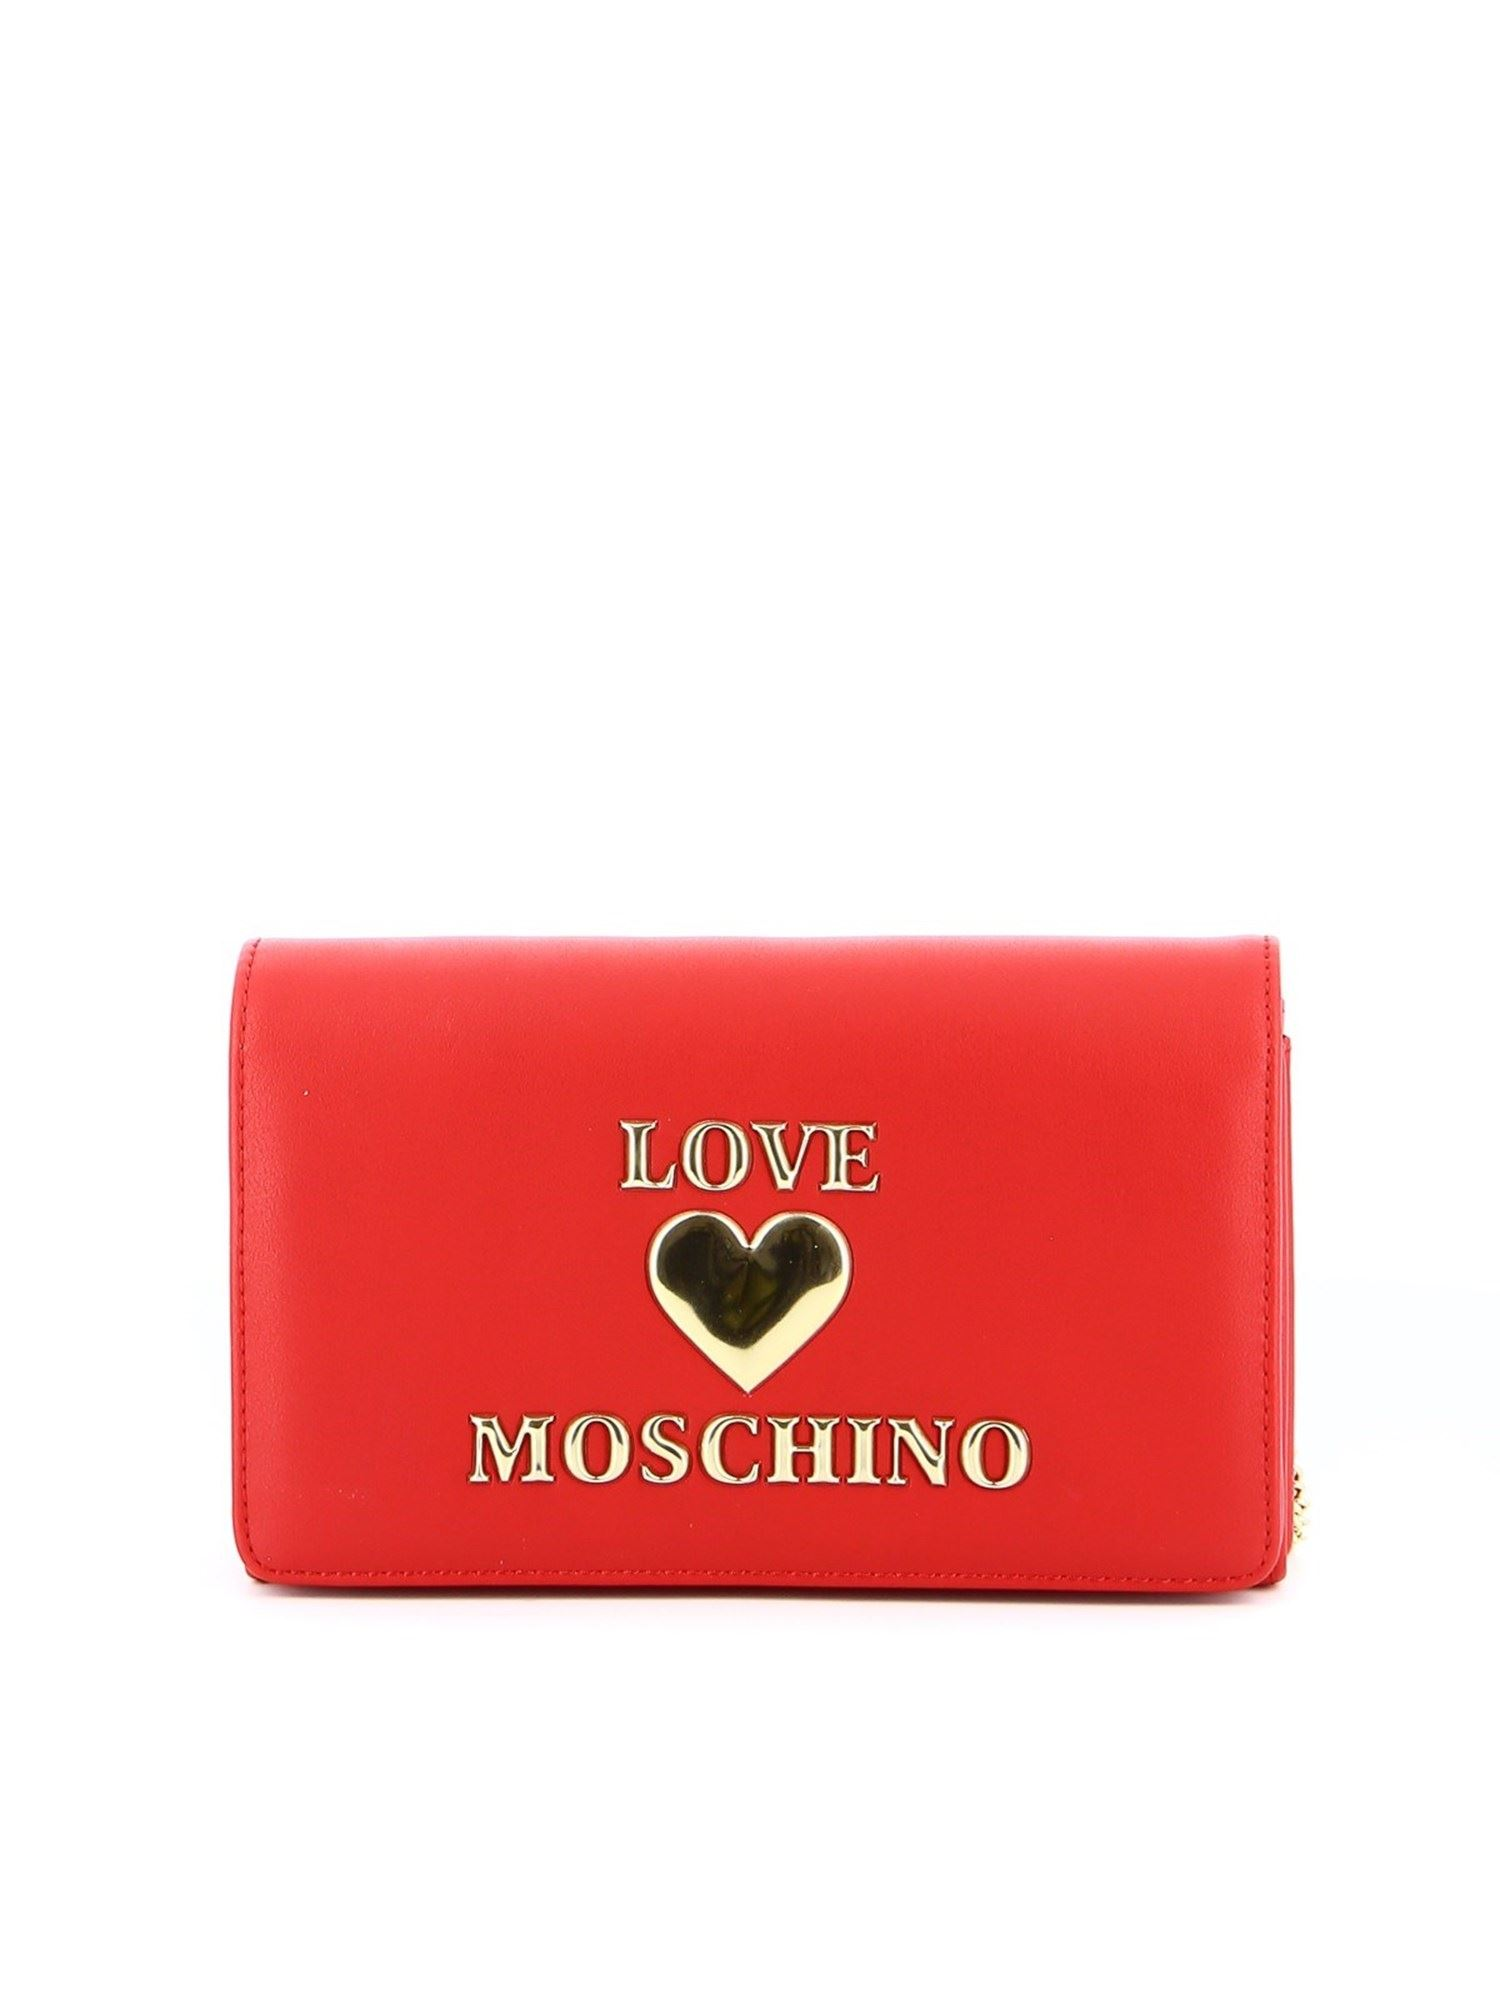 LOVE MOSCHINO METAL LOGO LETTERING BAG IN RED